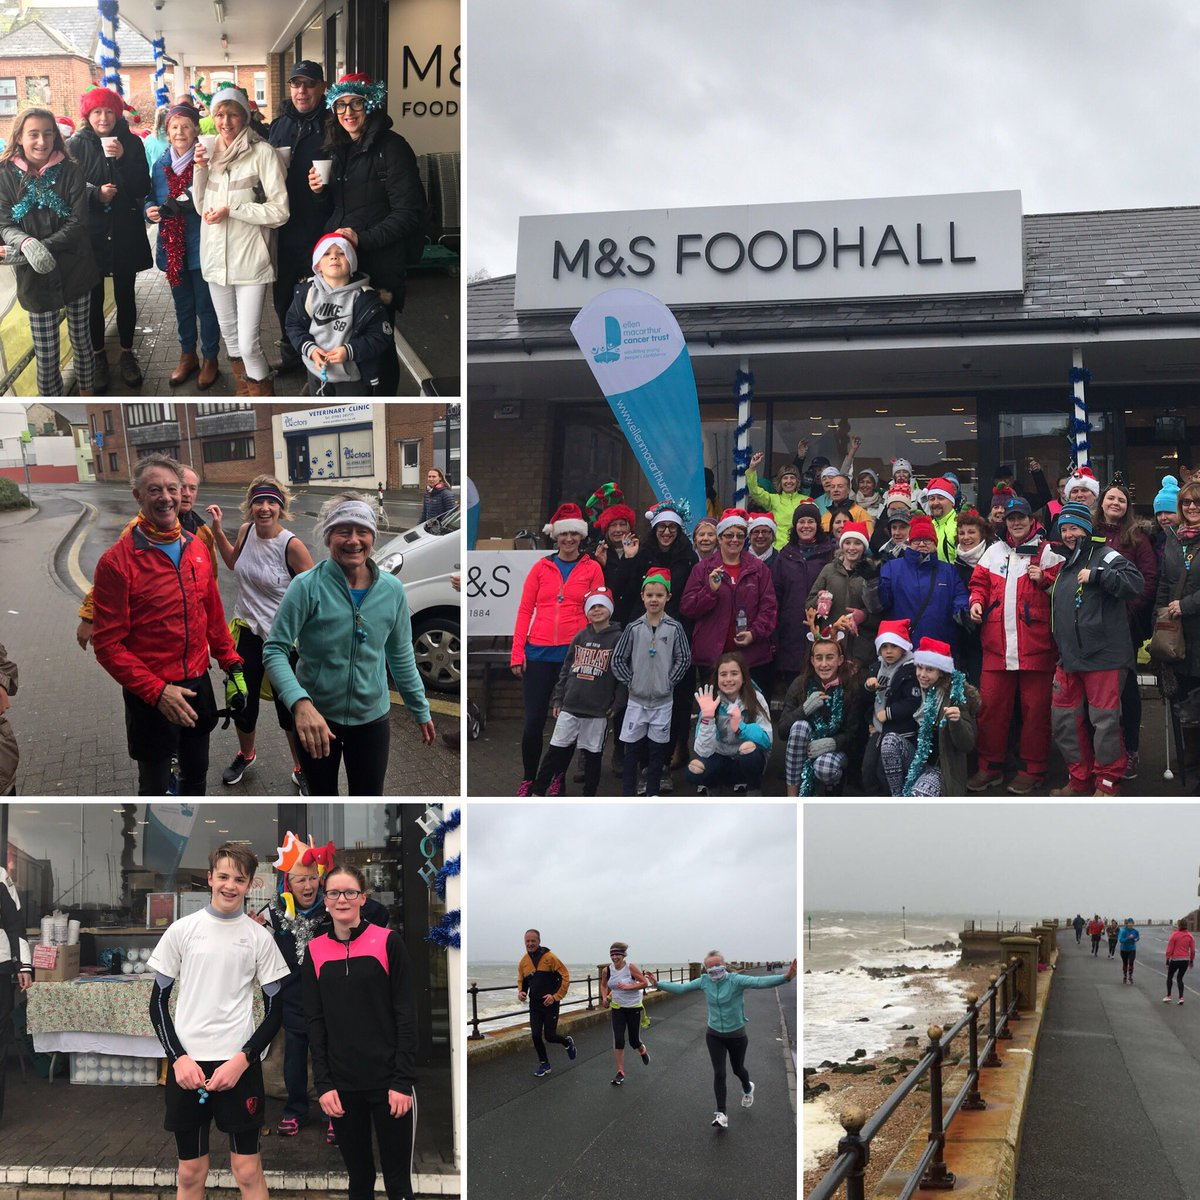 A big shout out to everyone that braved the weather and joined our Jingle Bell walk today! The mulled wine and mince pies went down a treat thanks to our lovely friends at M&S, Cowes! #FestiveFundraising #confidenceaftercancer #Jinglealltheway